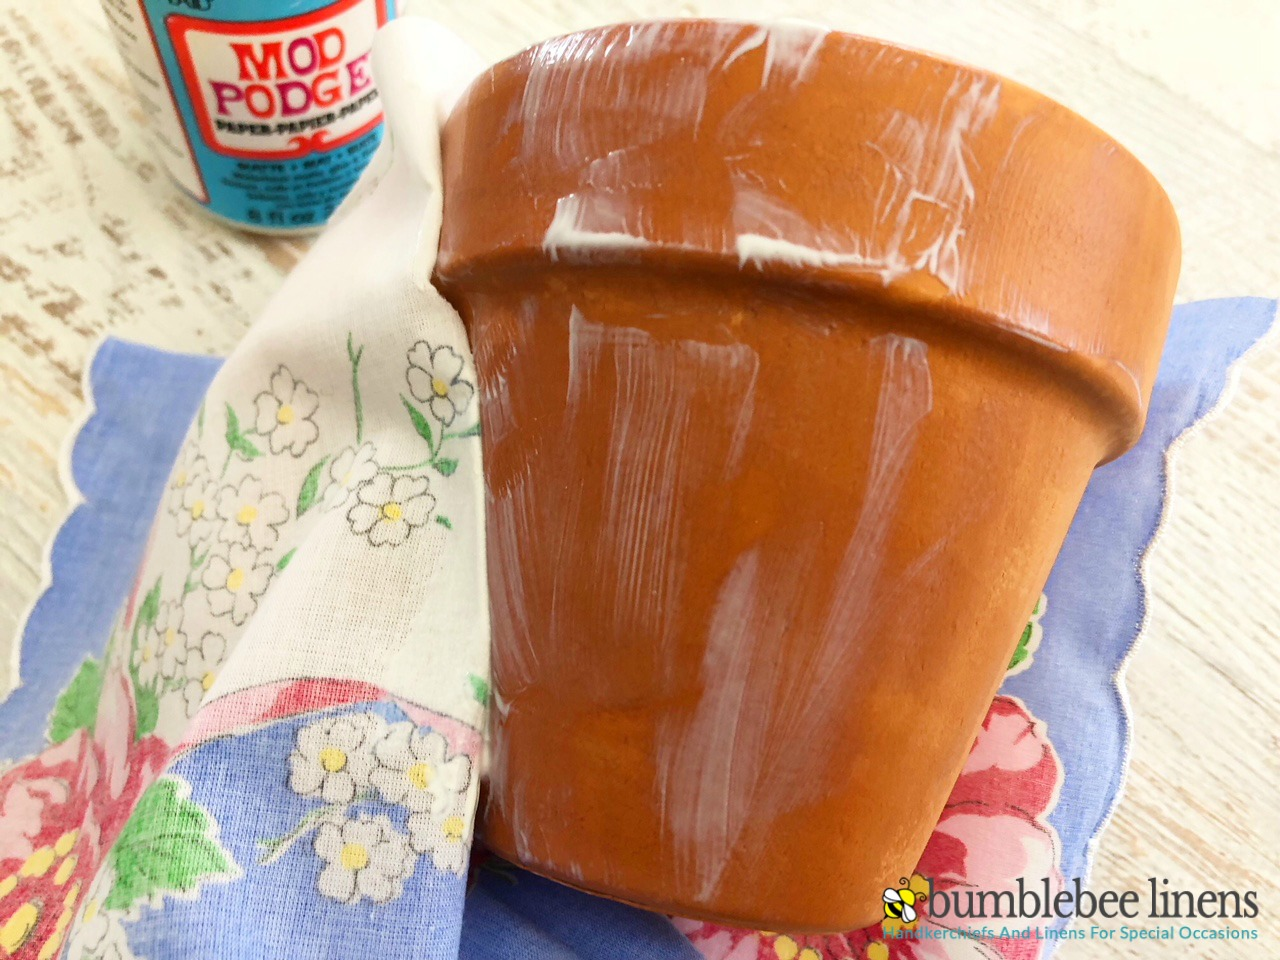 pot1Our Terra Cotta Pot Planter is a easy and beautiful way to spruce up a terra cotta pot with a little Mod Podge and a handkerchief.